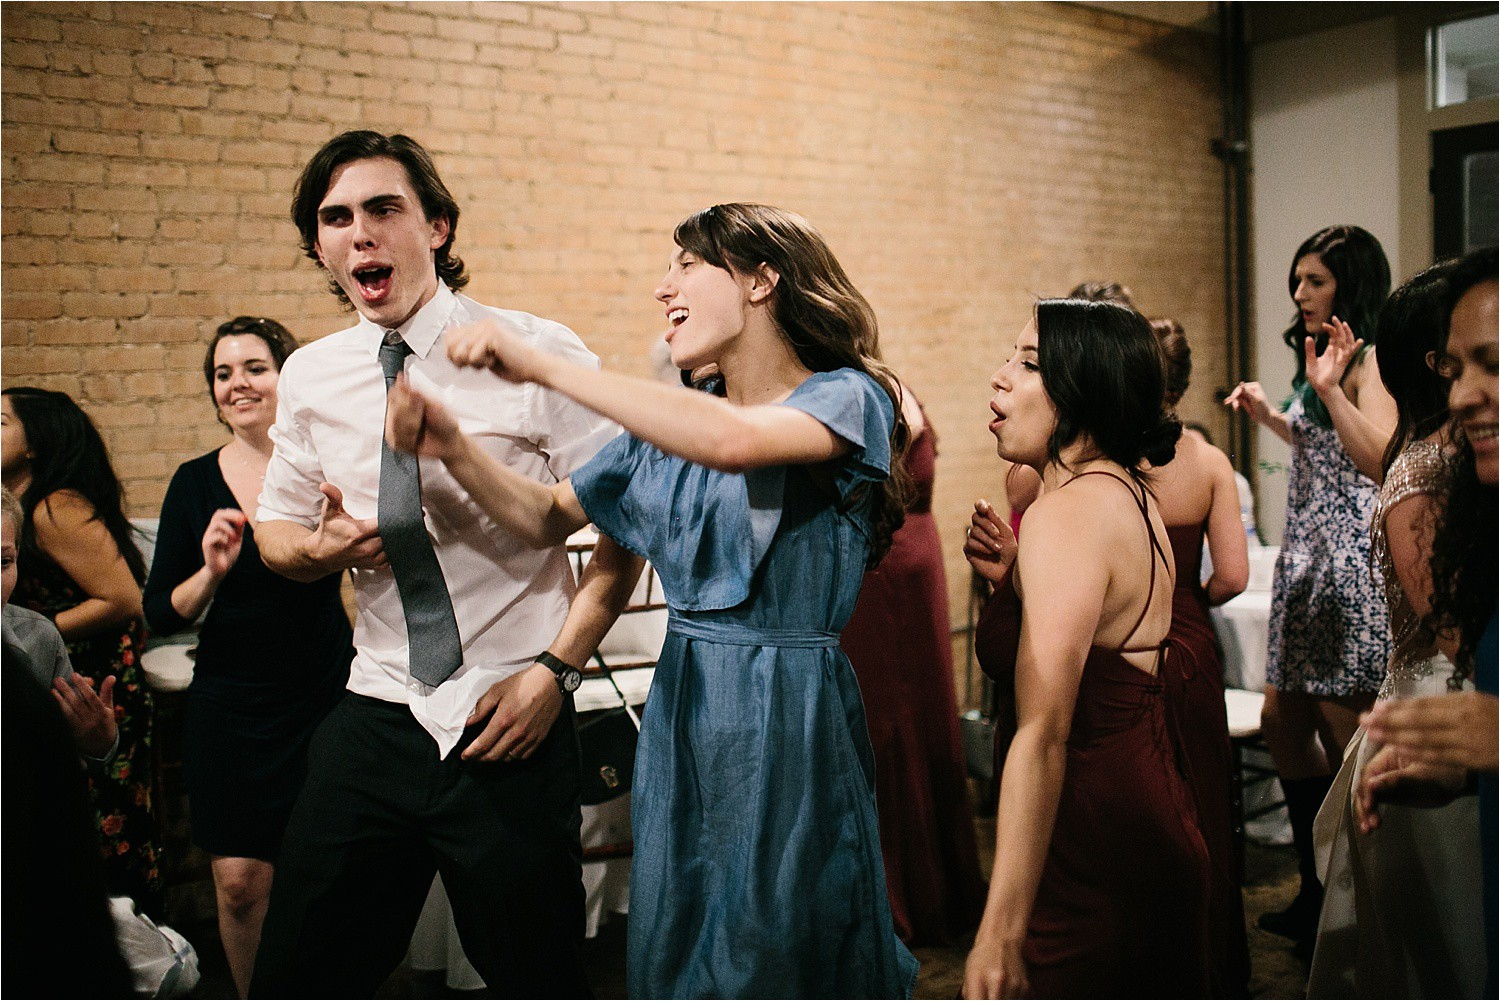 whittney-drew-__-an-intimate-wine-and-navy-wedding-in-an-industrial-venue-at-loft-123-in-paris-tx-by-north-texas-wedding-photographer-rachel-meagan-photography-_-095